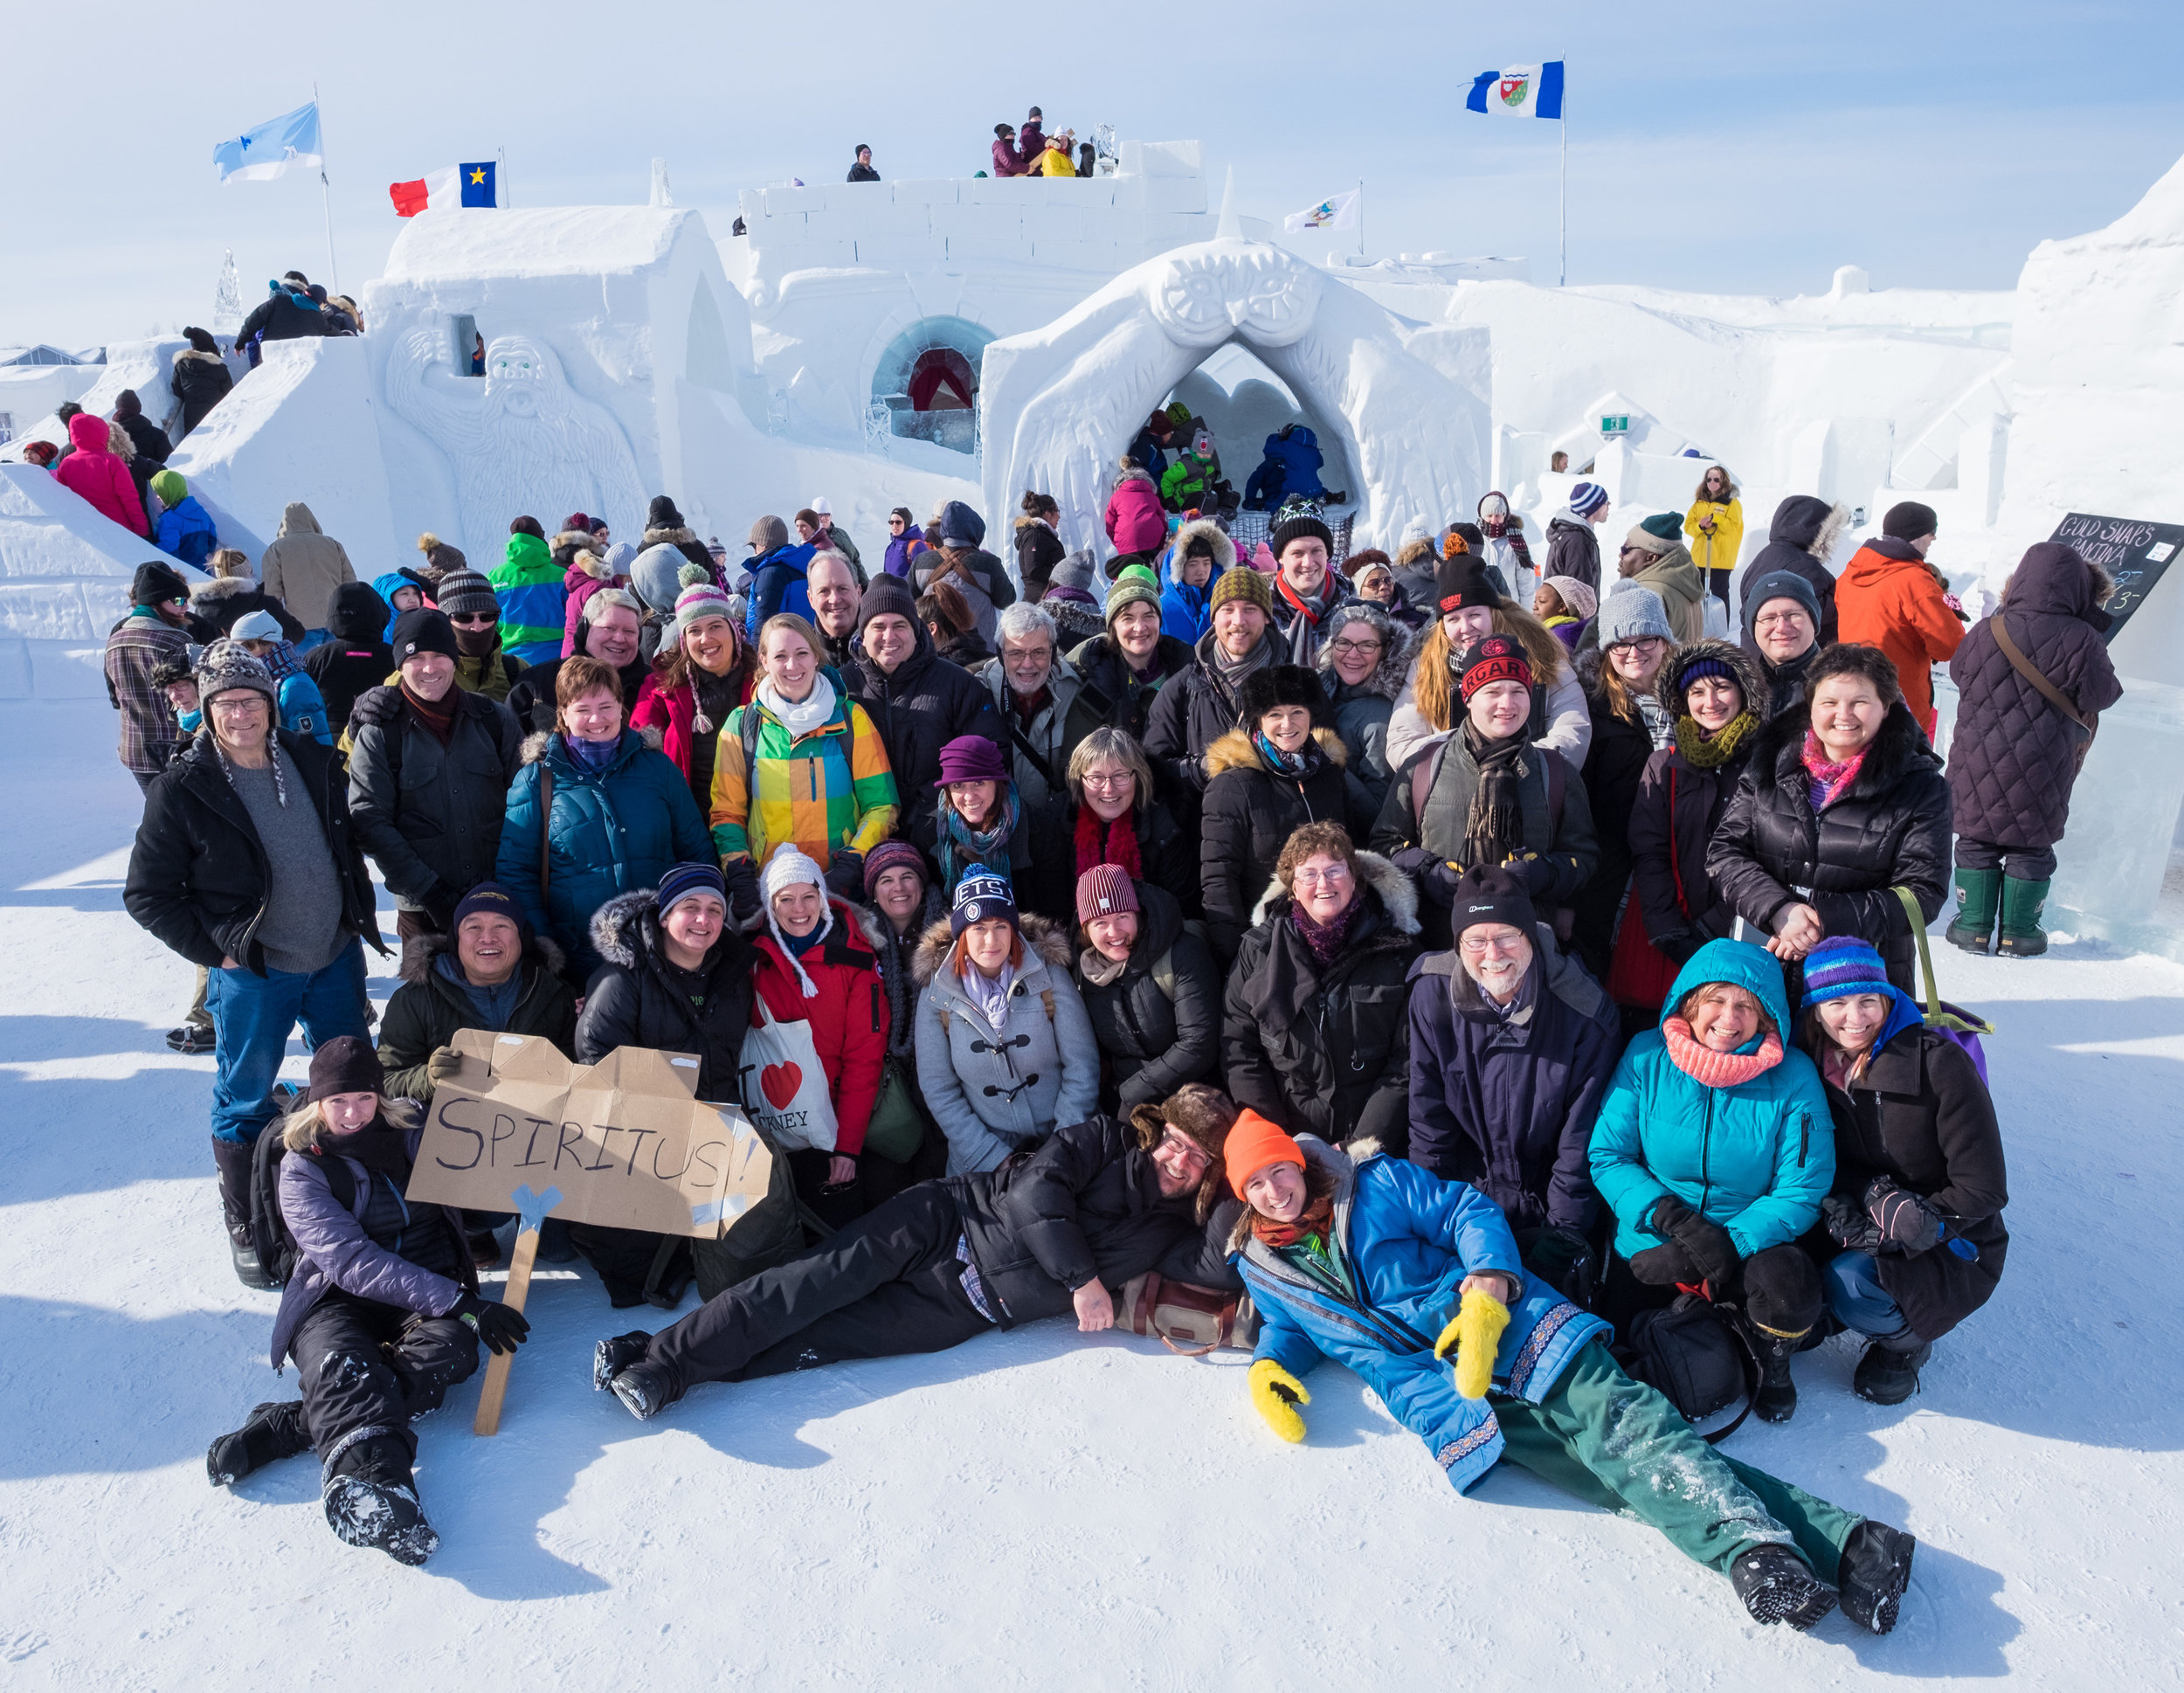 Spiritus Choir in Yellowknife at Snowking festival - Group Photo.jpg